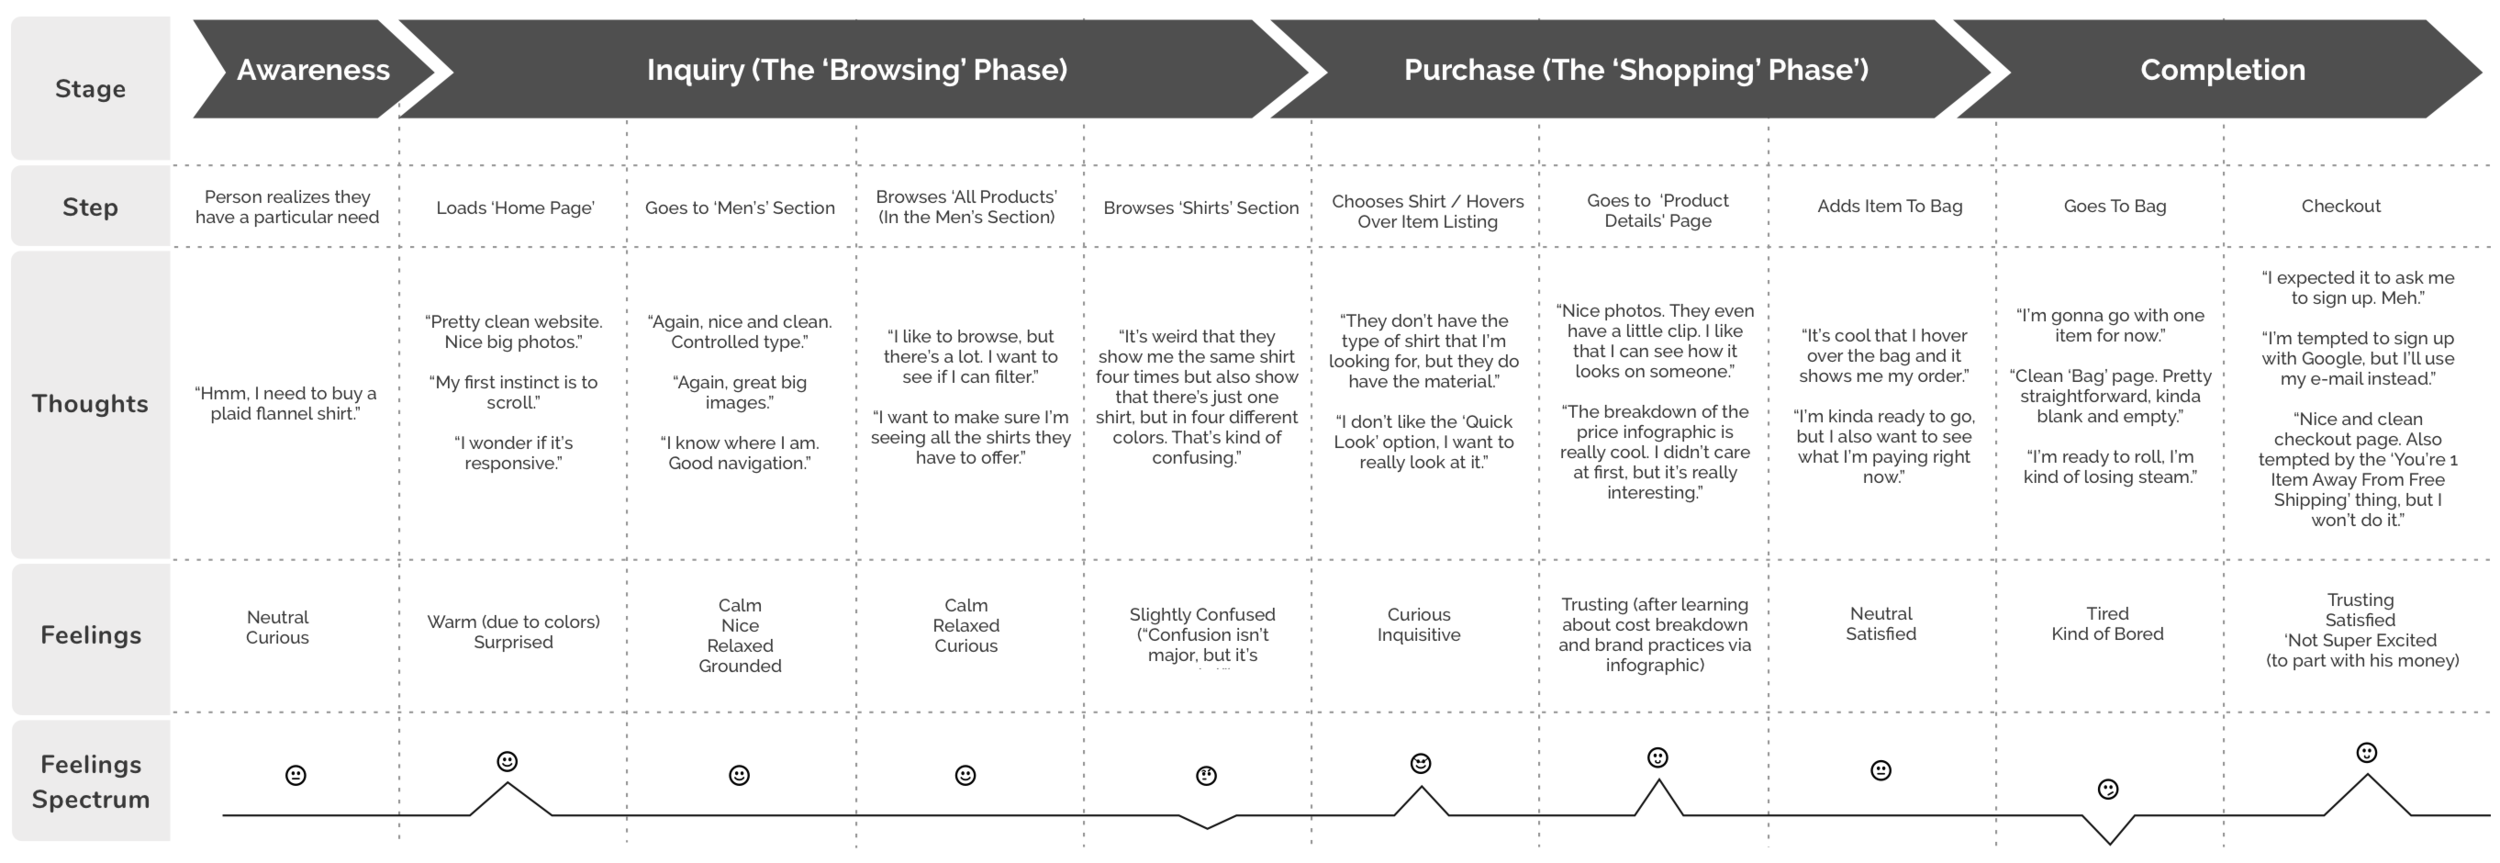 Journey map of a user navigating a main competitor's website. Visualizing the lower points of the experience and its corresponding thoughts, feelings and behaviors had great impact on the design's goals, informing me of what to prevent and/or solve for.